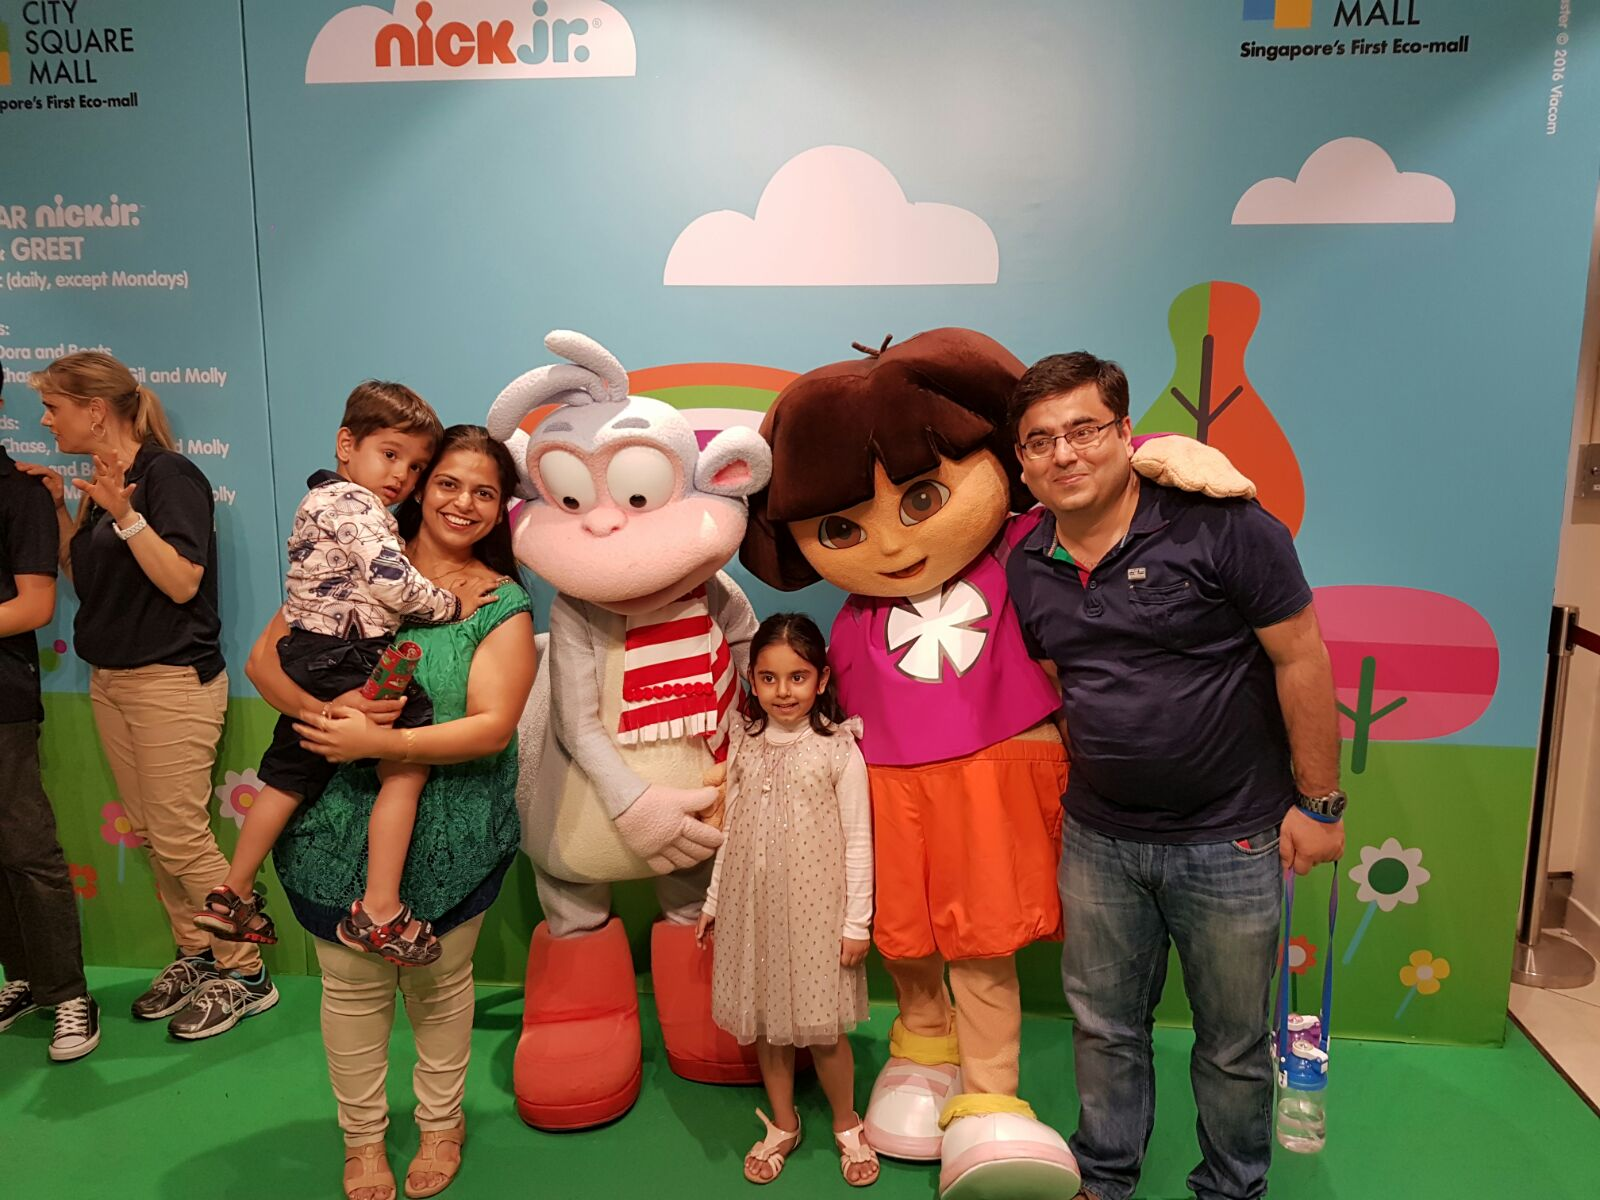 Nick Jr Christmas City Square Mall